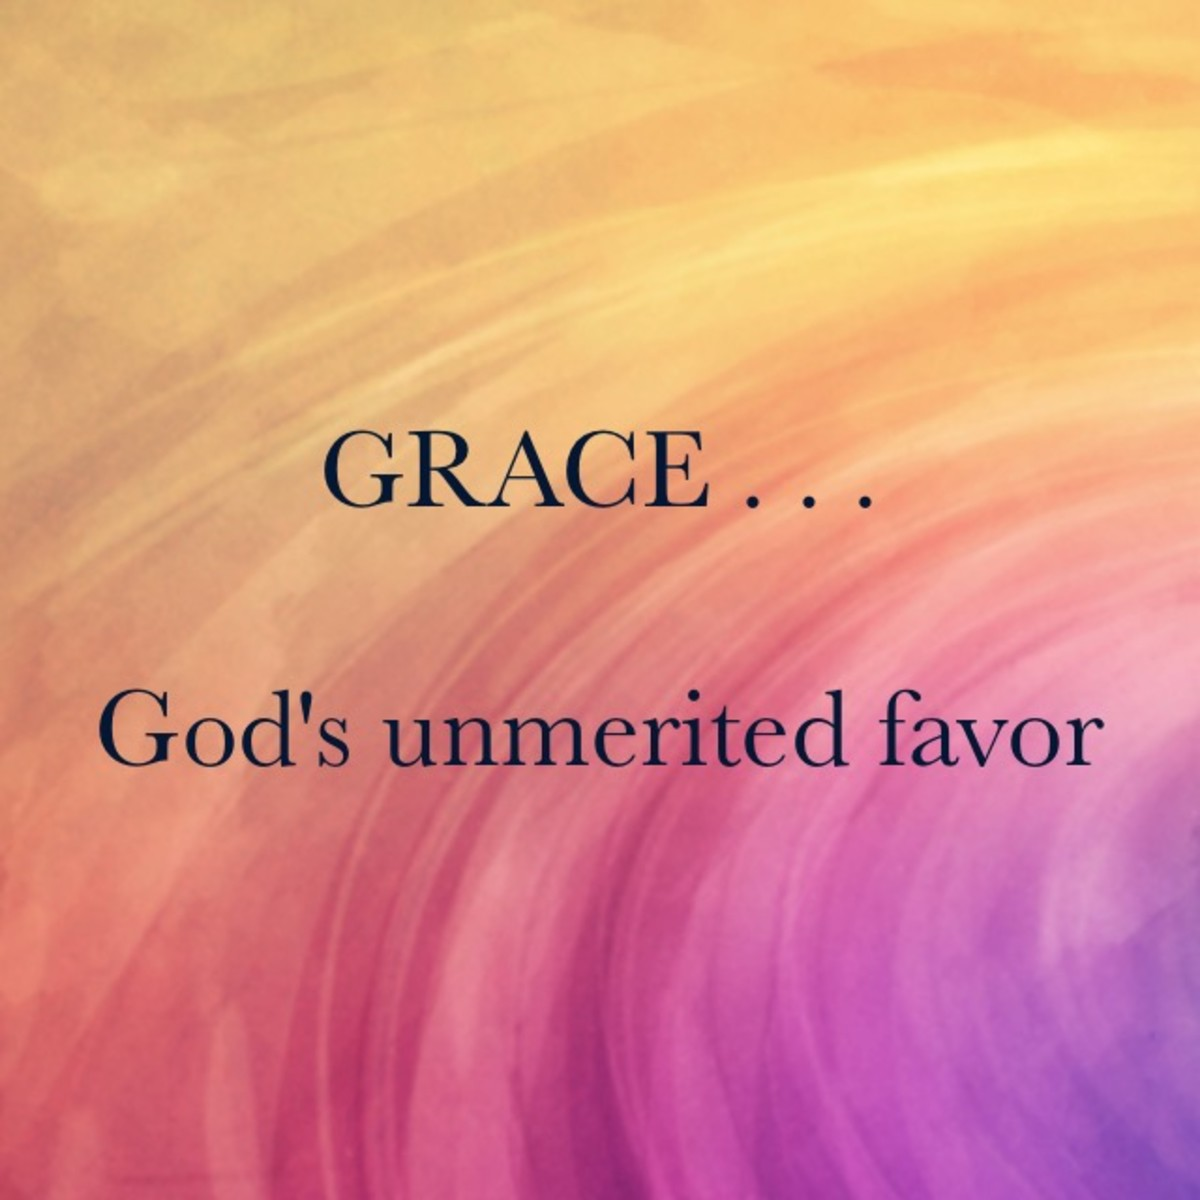 Two Kinds of Grace